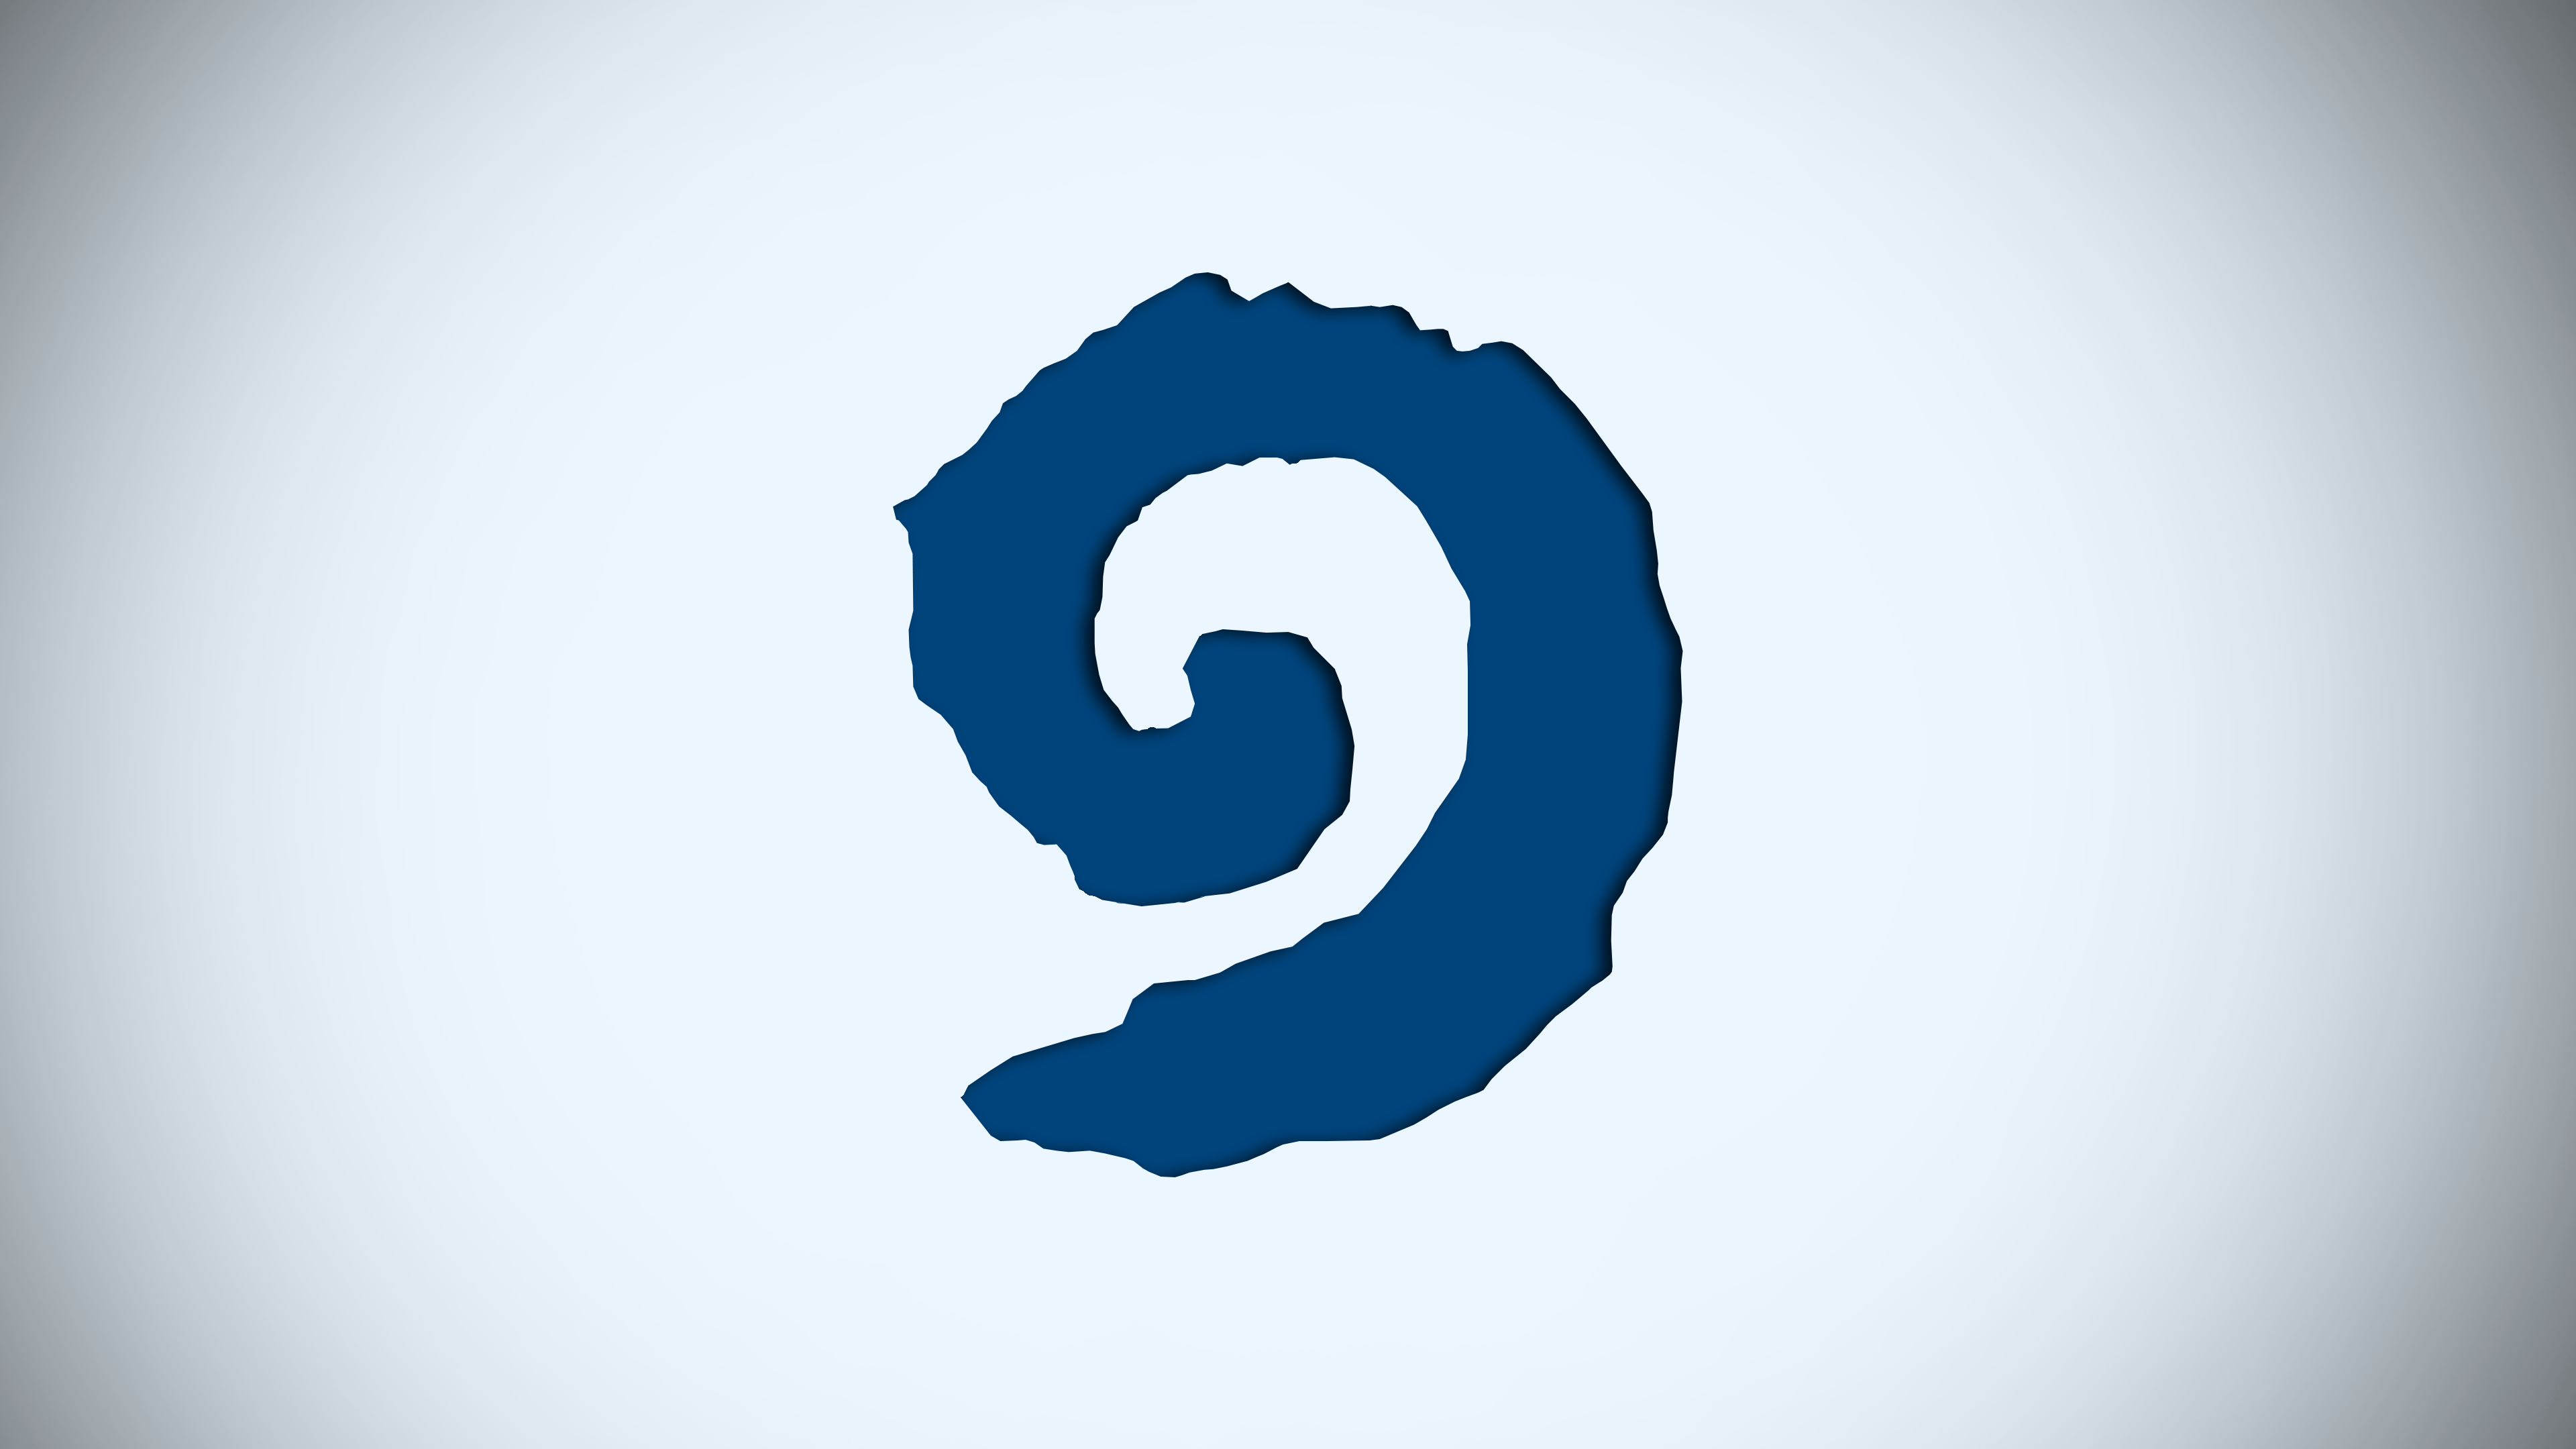 Hearthstone Logo By Atroxcze On Deviantart Whispers of the old gods hearthstone wallpapers for desktop and. hearthstone logo by atroxcze on deviantart